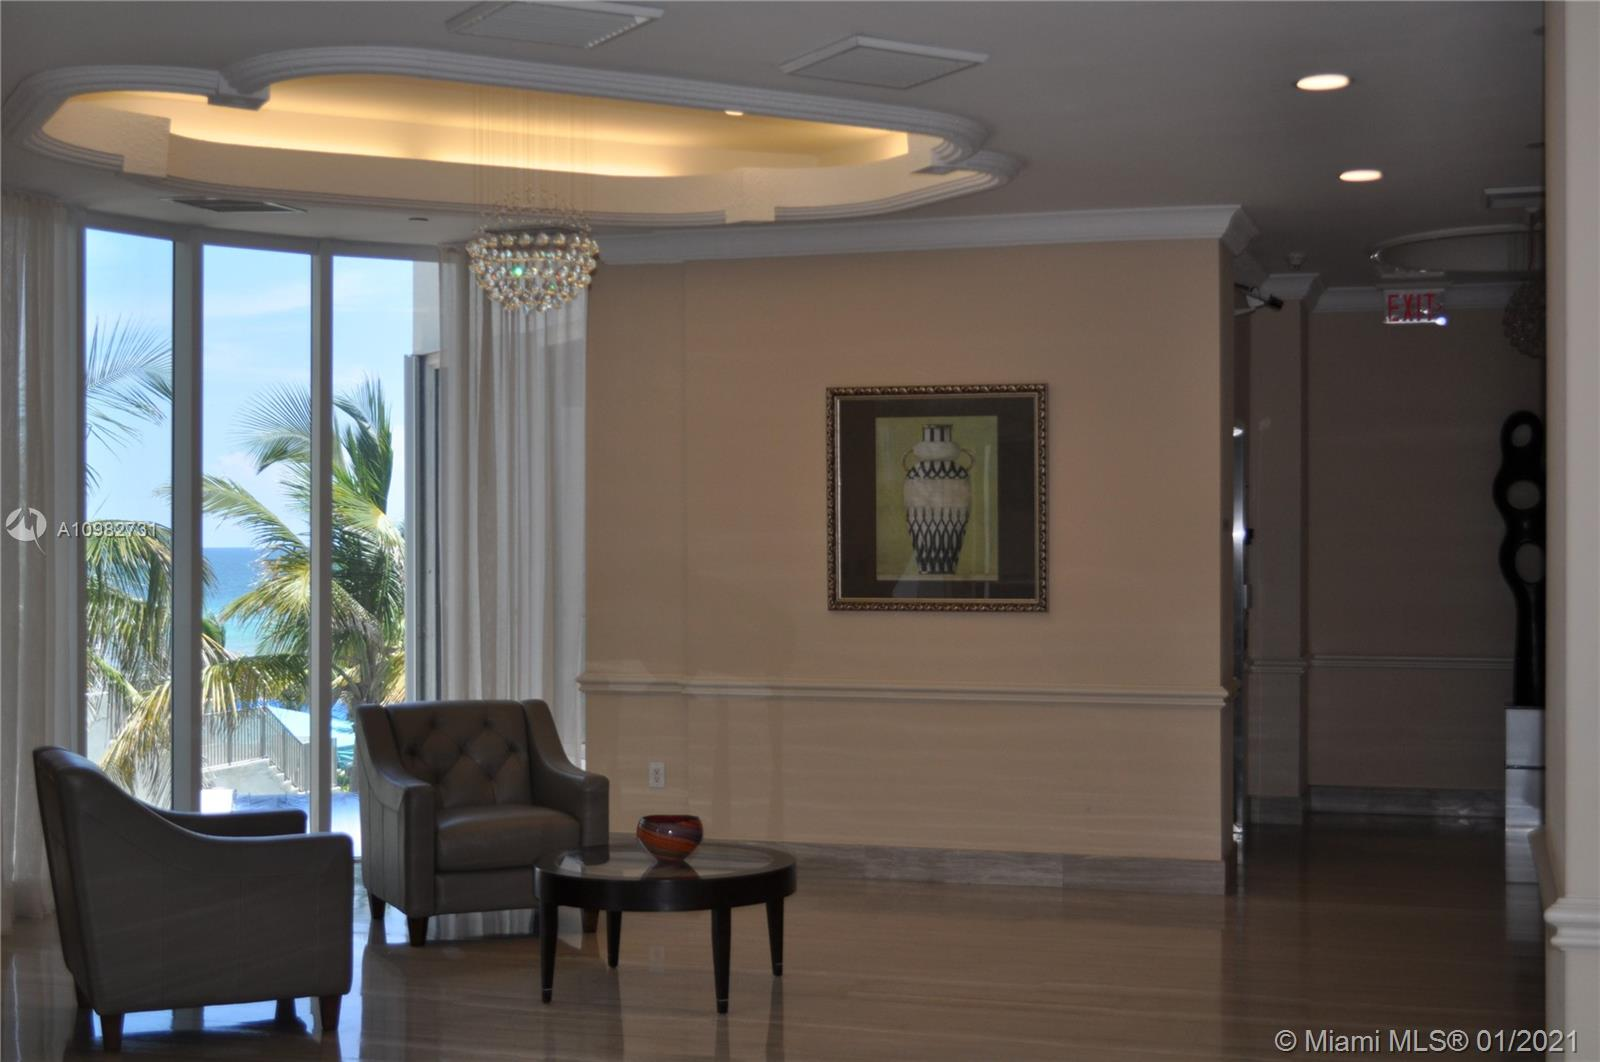 18671 Collins Ave # 202, Sunny Isles Beach, Florida 33160, 3 Bedrooms Bedrooms, ,3 BathroomsBathrooms,Residential Lease,For Rent,18671 Collins Ave # 202,A10982731